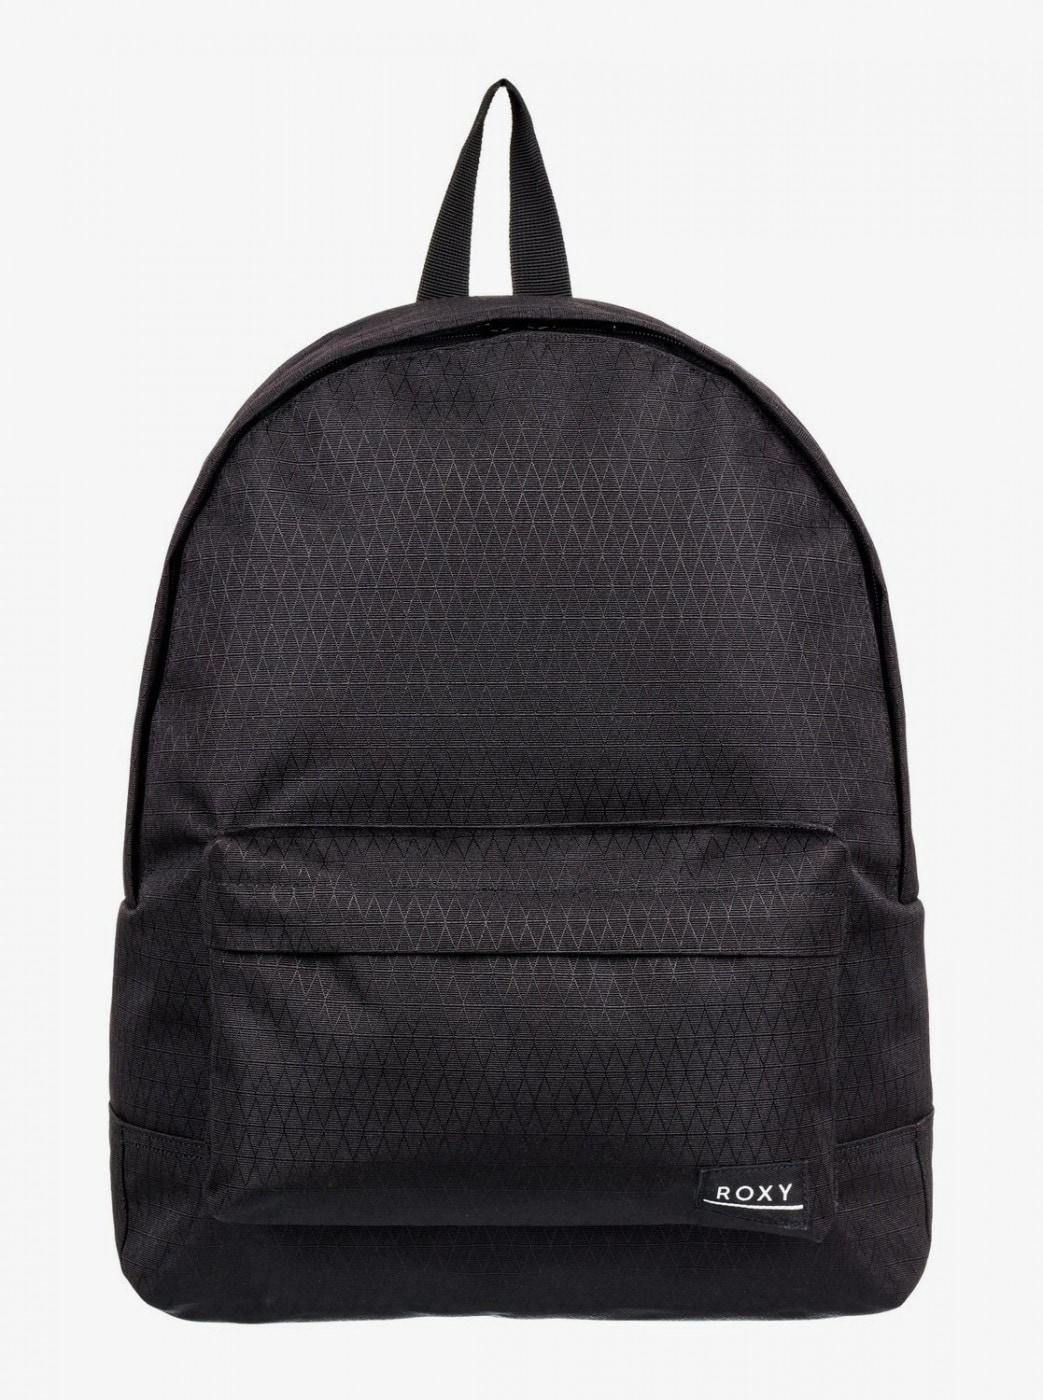 Backpack ROXY SUGAR BABY TEXTURED 16L